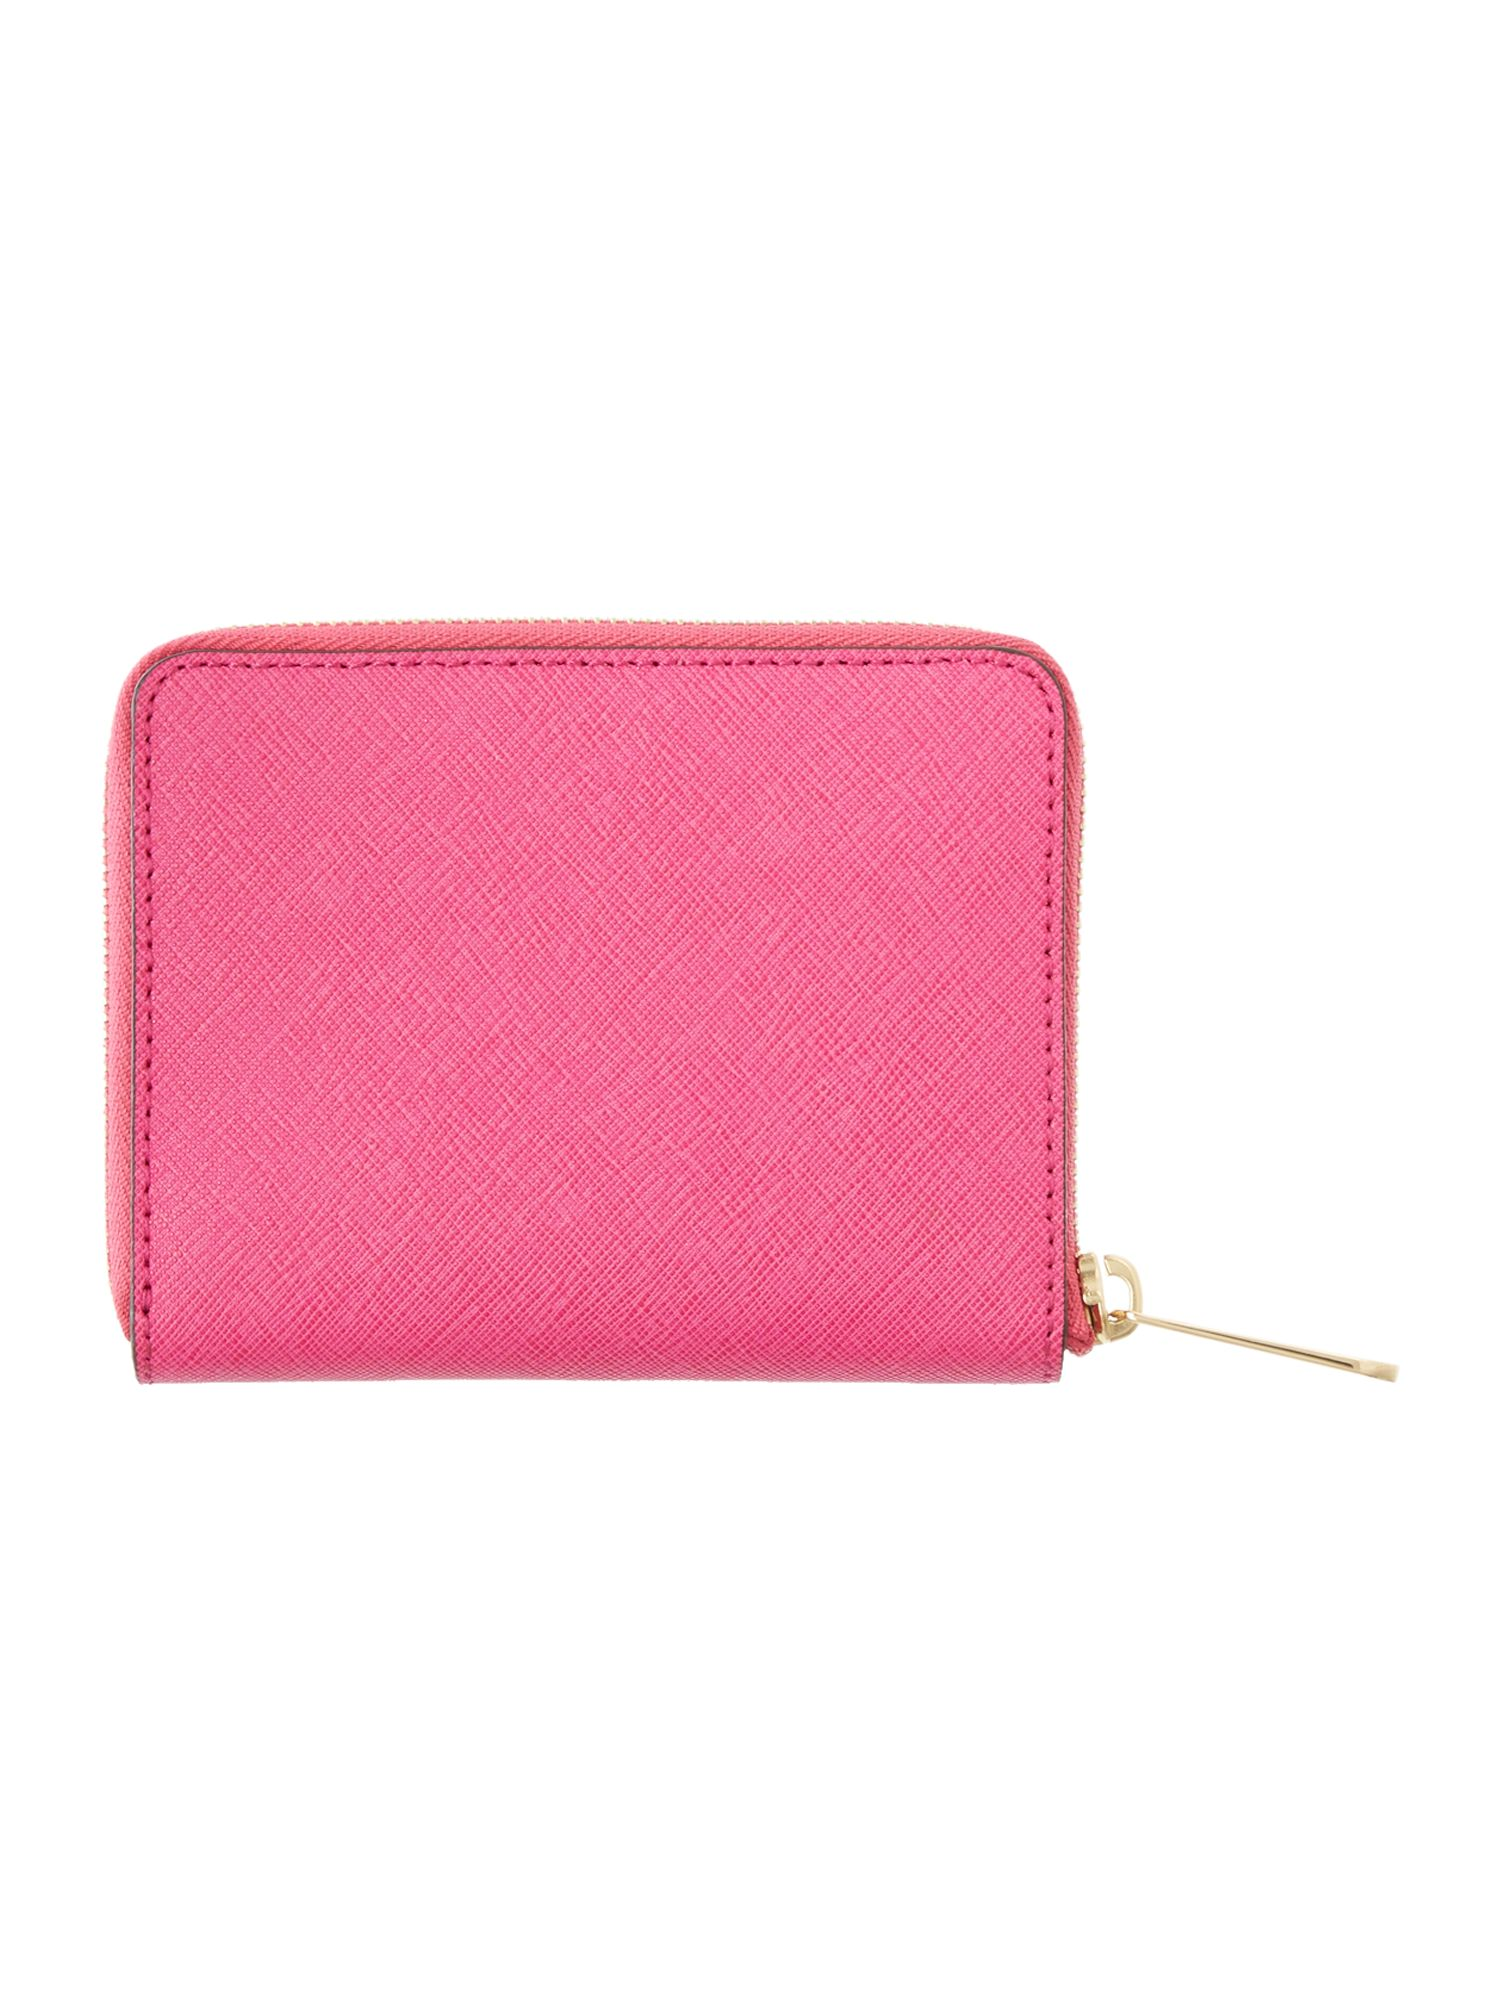 Jet Set Travel pink medium zip around purse